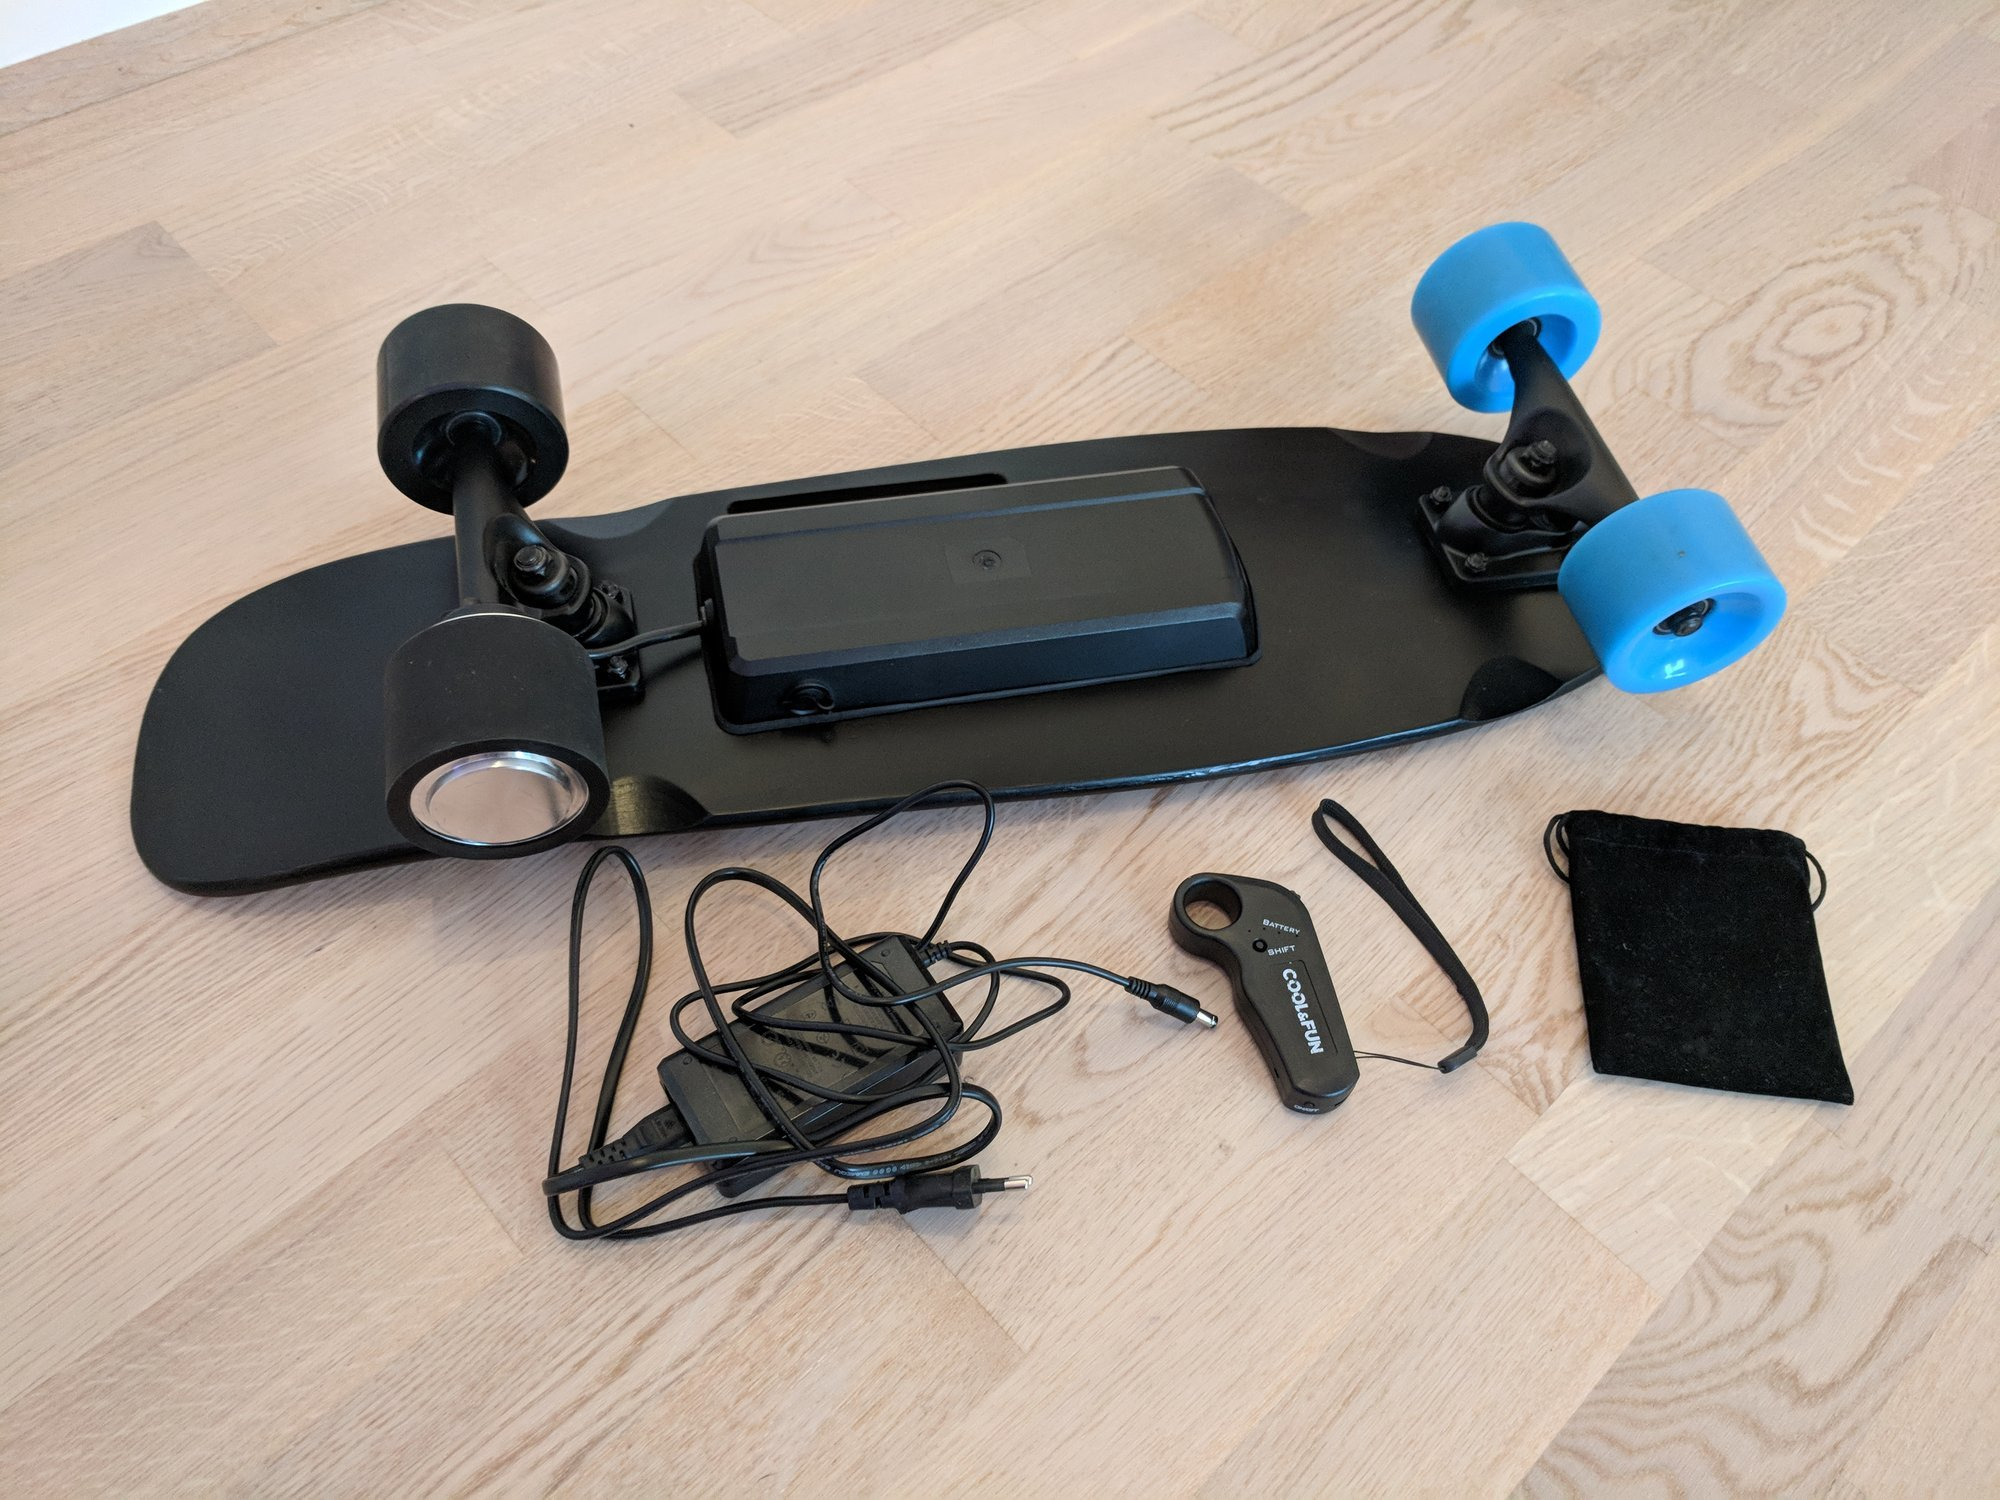 The electric Cool&Fun skateboard laying bottom side up